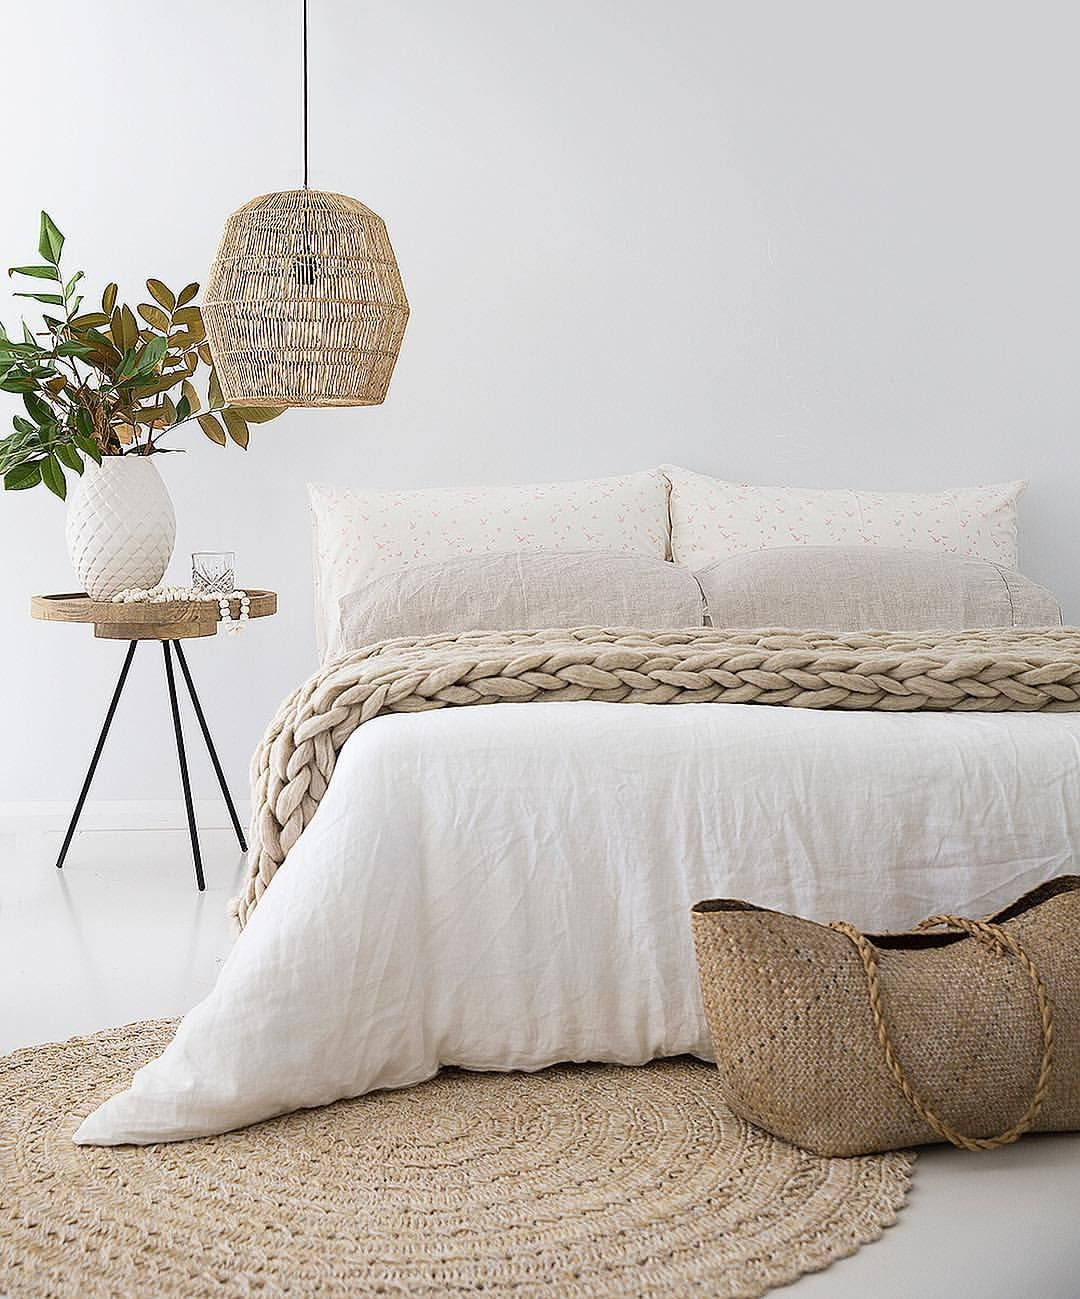 969 Likes 33 Comments Uniqwa Furniture Uniqwacollections On